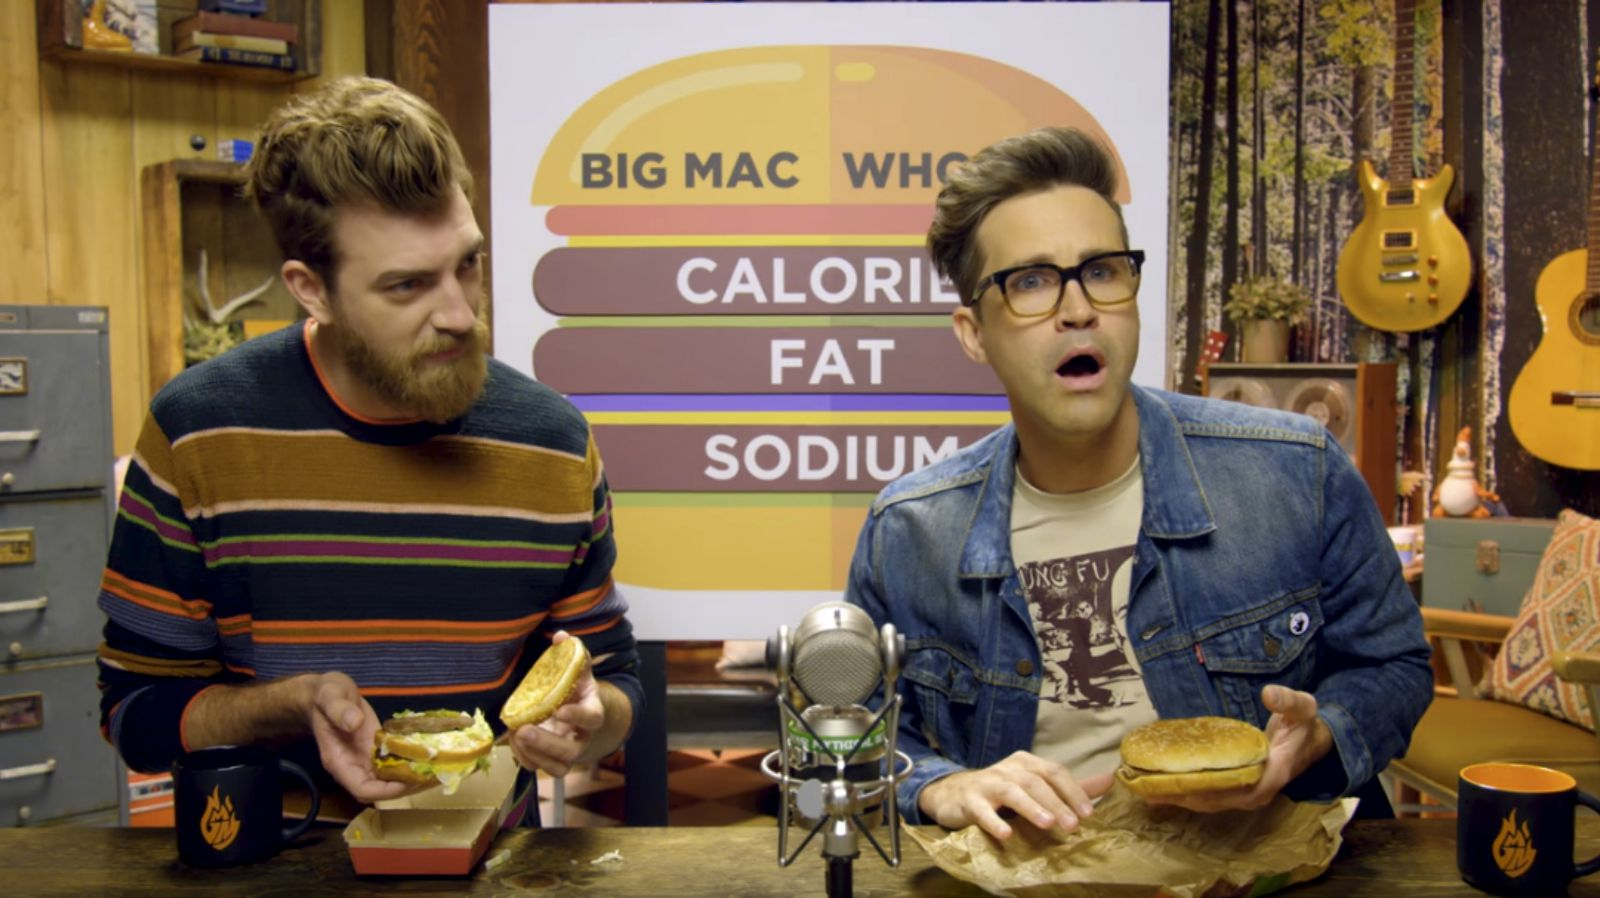 They Compared a Big Mac and a Whopper to Find Out Which Is Healthier. Even THEY Were Surprised…